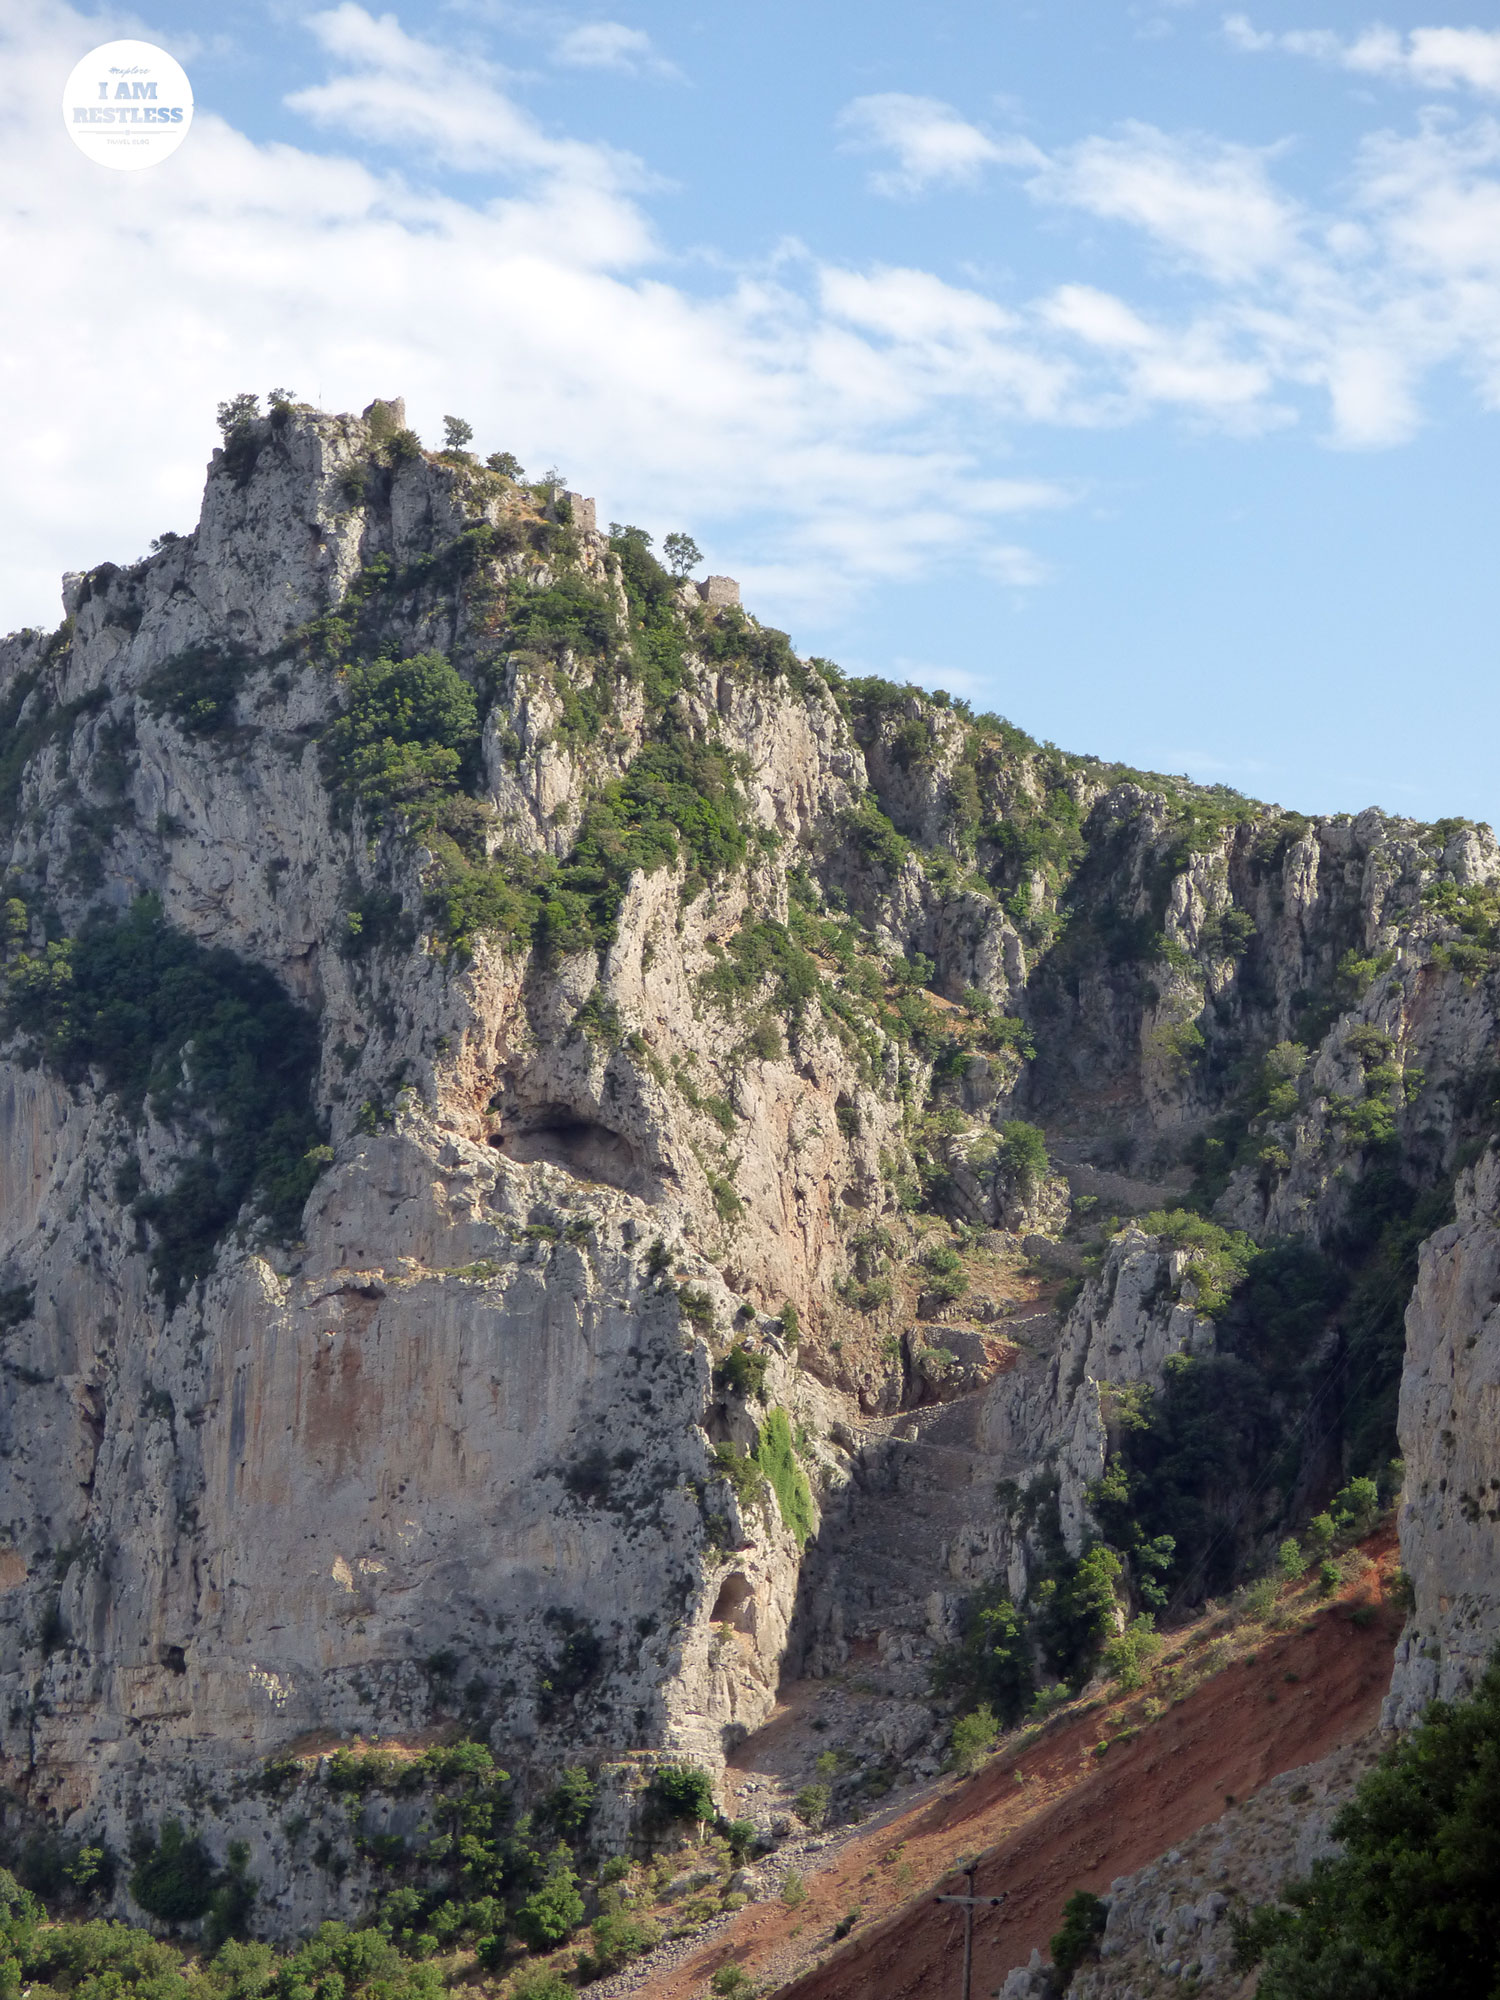 What-to-See-in-Greece-The-Scenic-Lookout-at-BellEkklisia-Agia-Paraskevi-Εκκλησία-Αγία-Παρασκευή---2.jpg